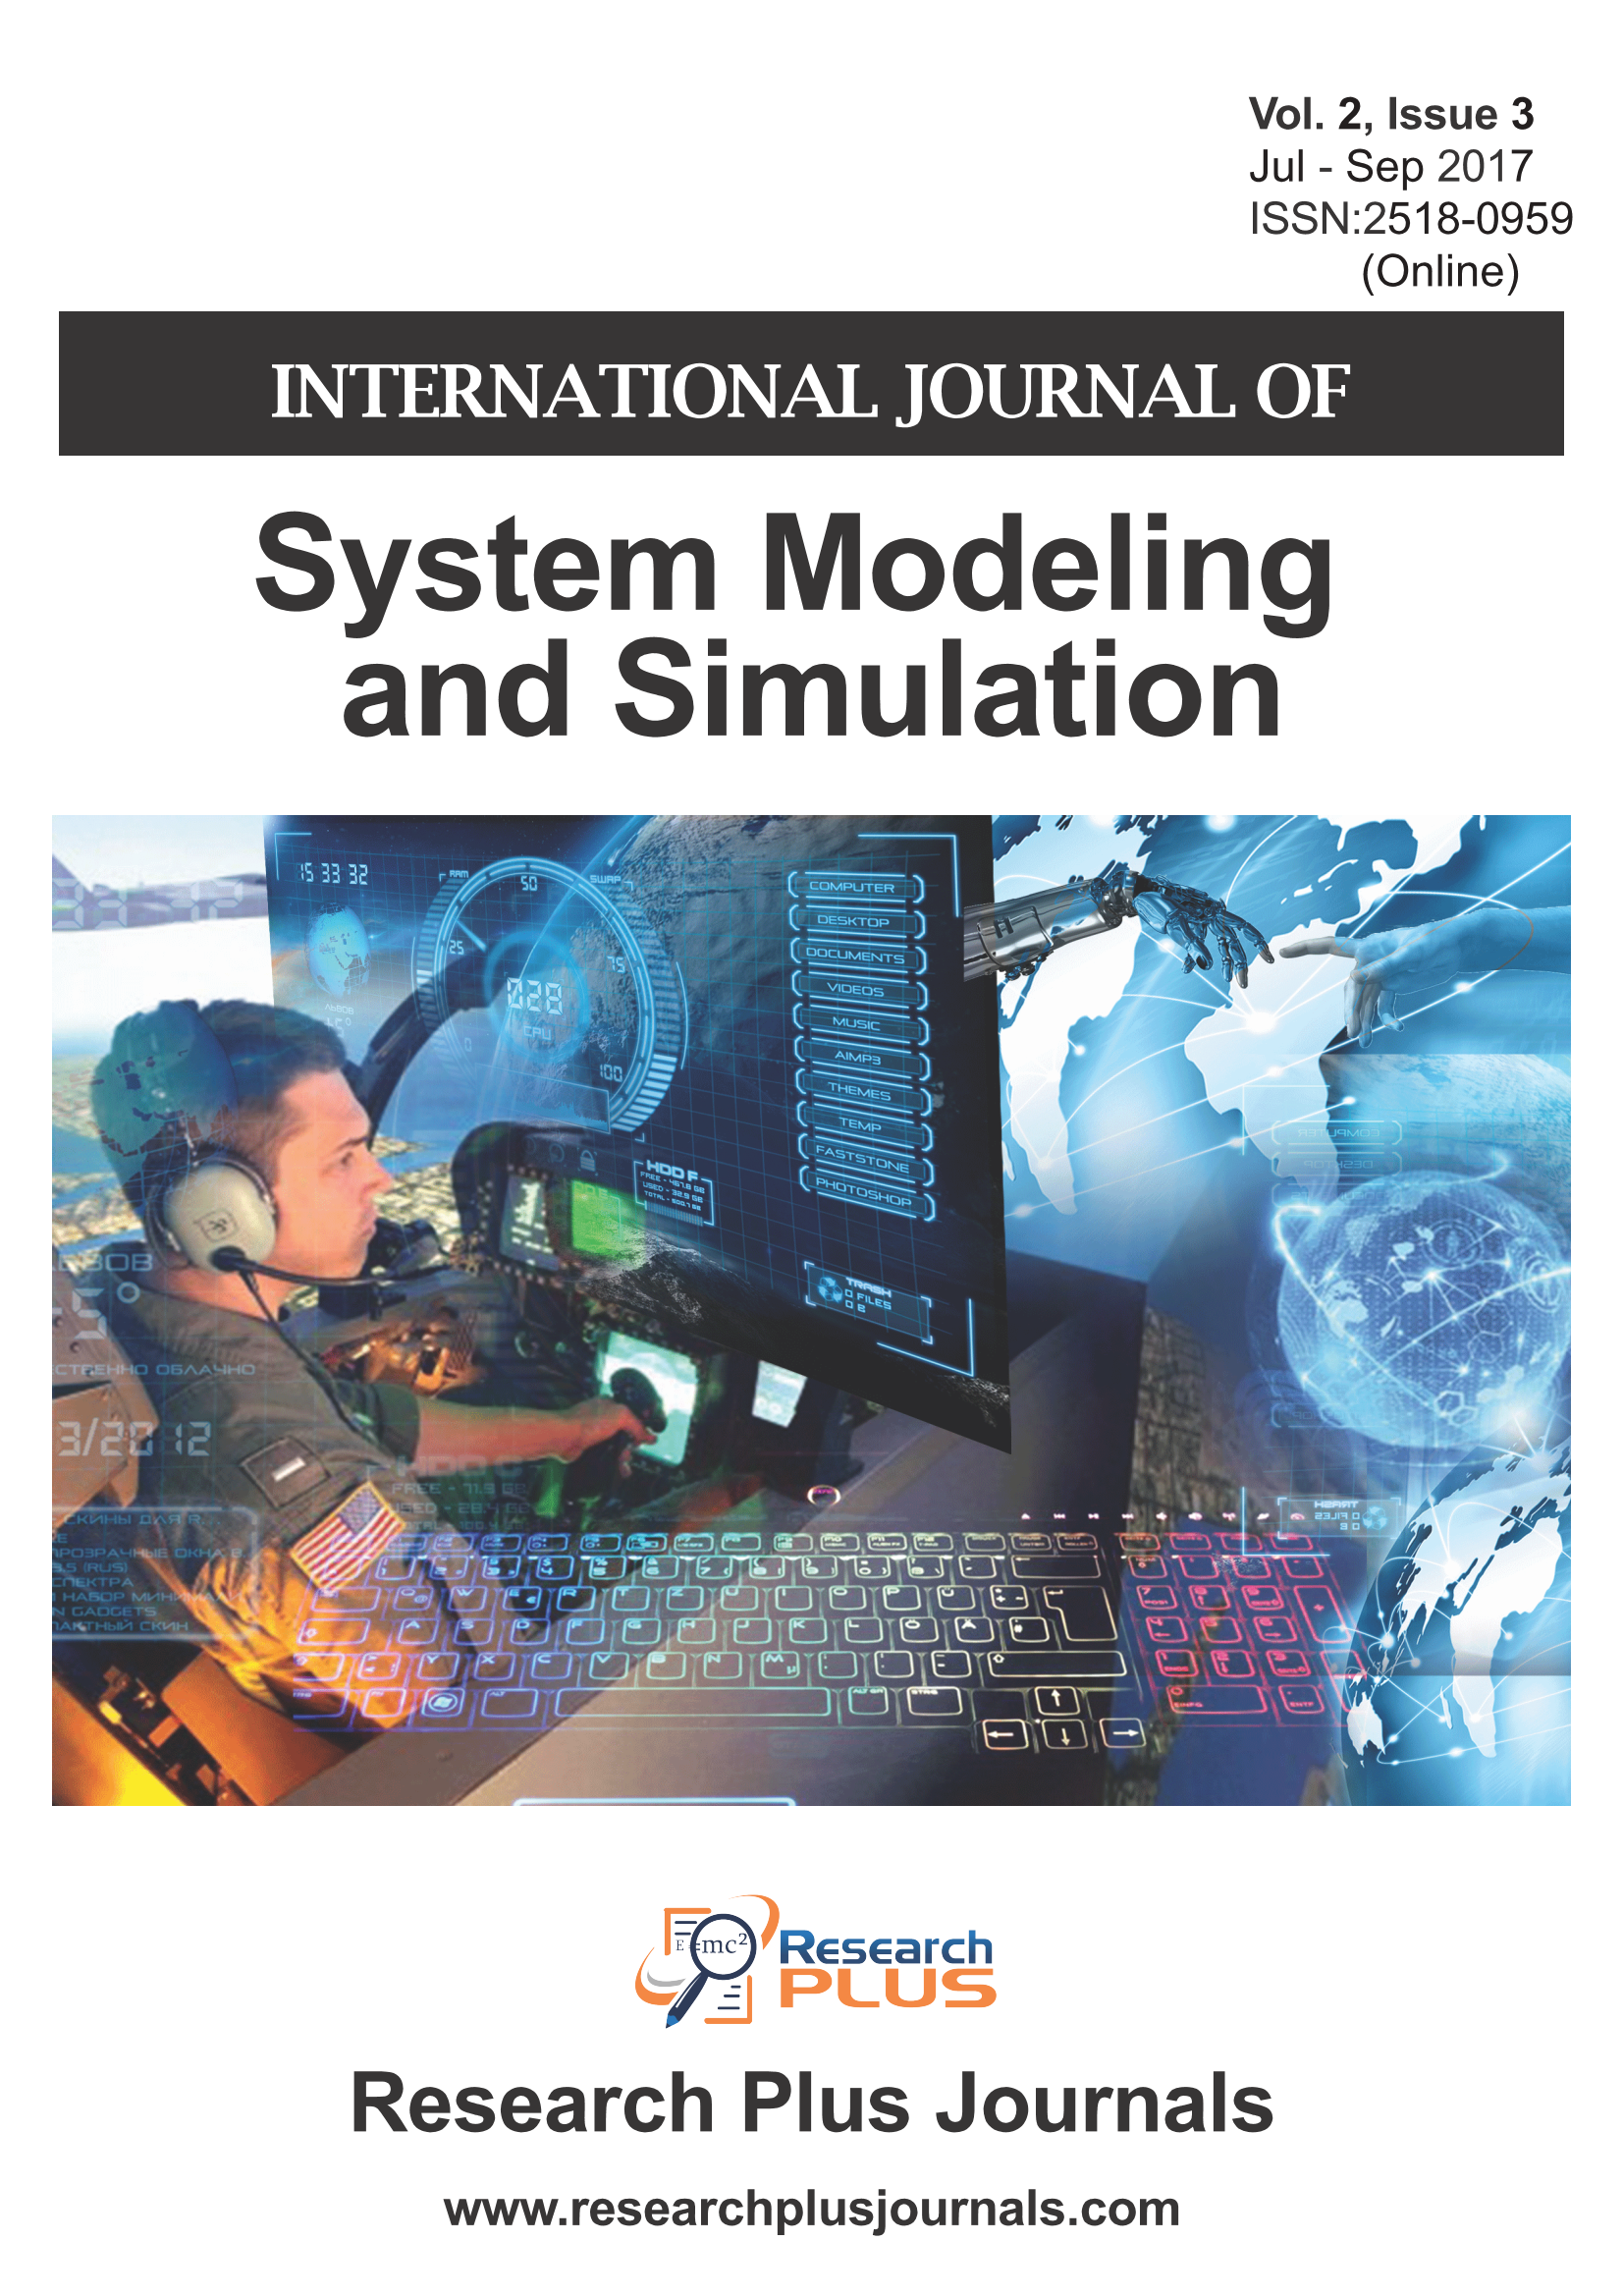 Volume 2, Issue 3, International Journal of System Modeling and Simulation (IJSMS)  (Online ISSN: 2518-0959)